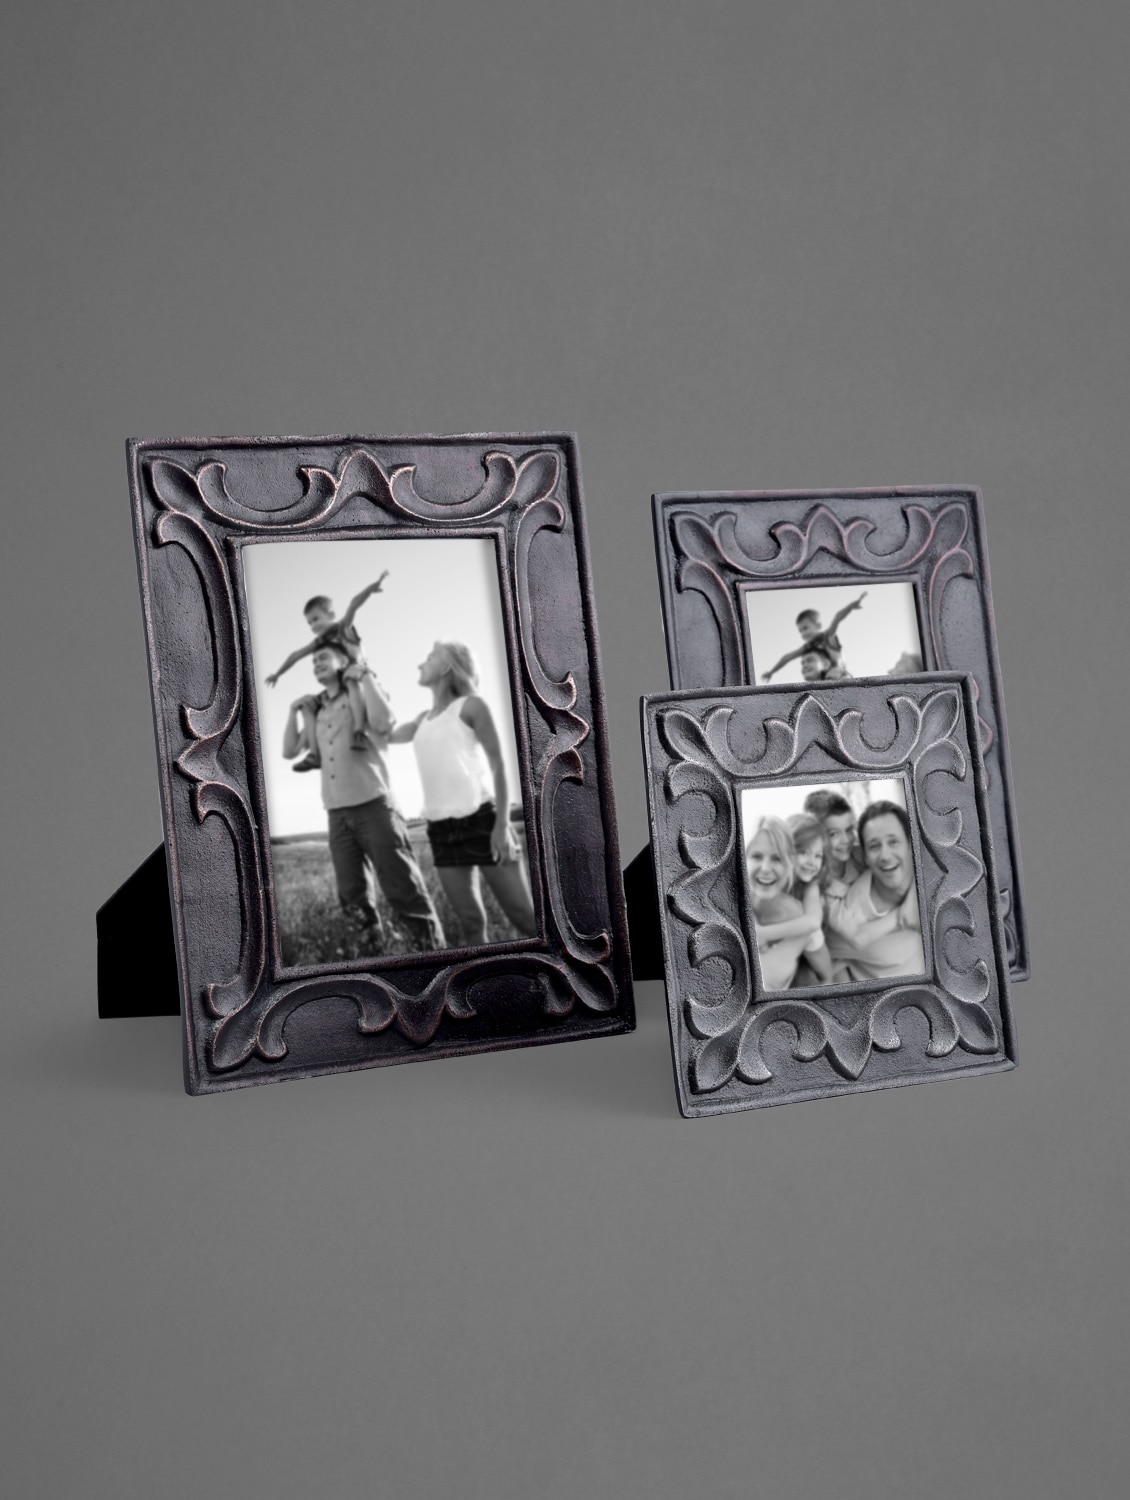 Aluminium Photo Frame With Copper Finish - Indian Reverie